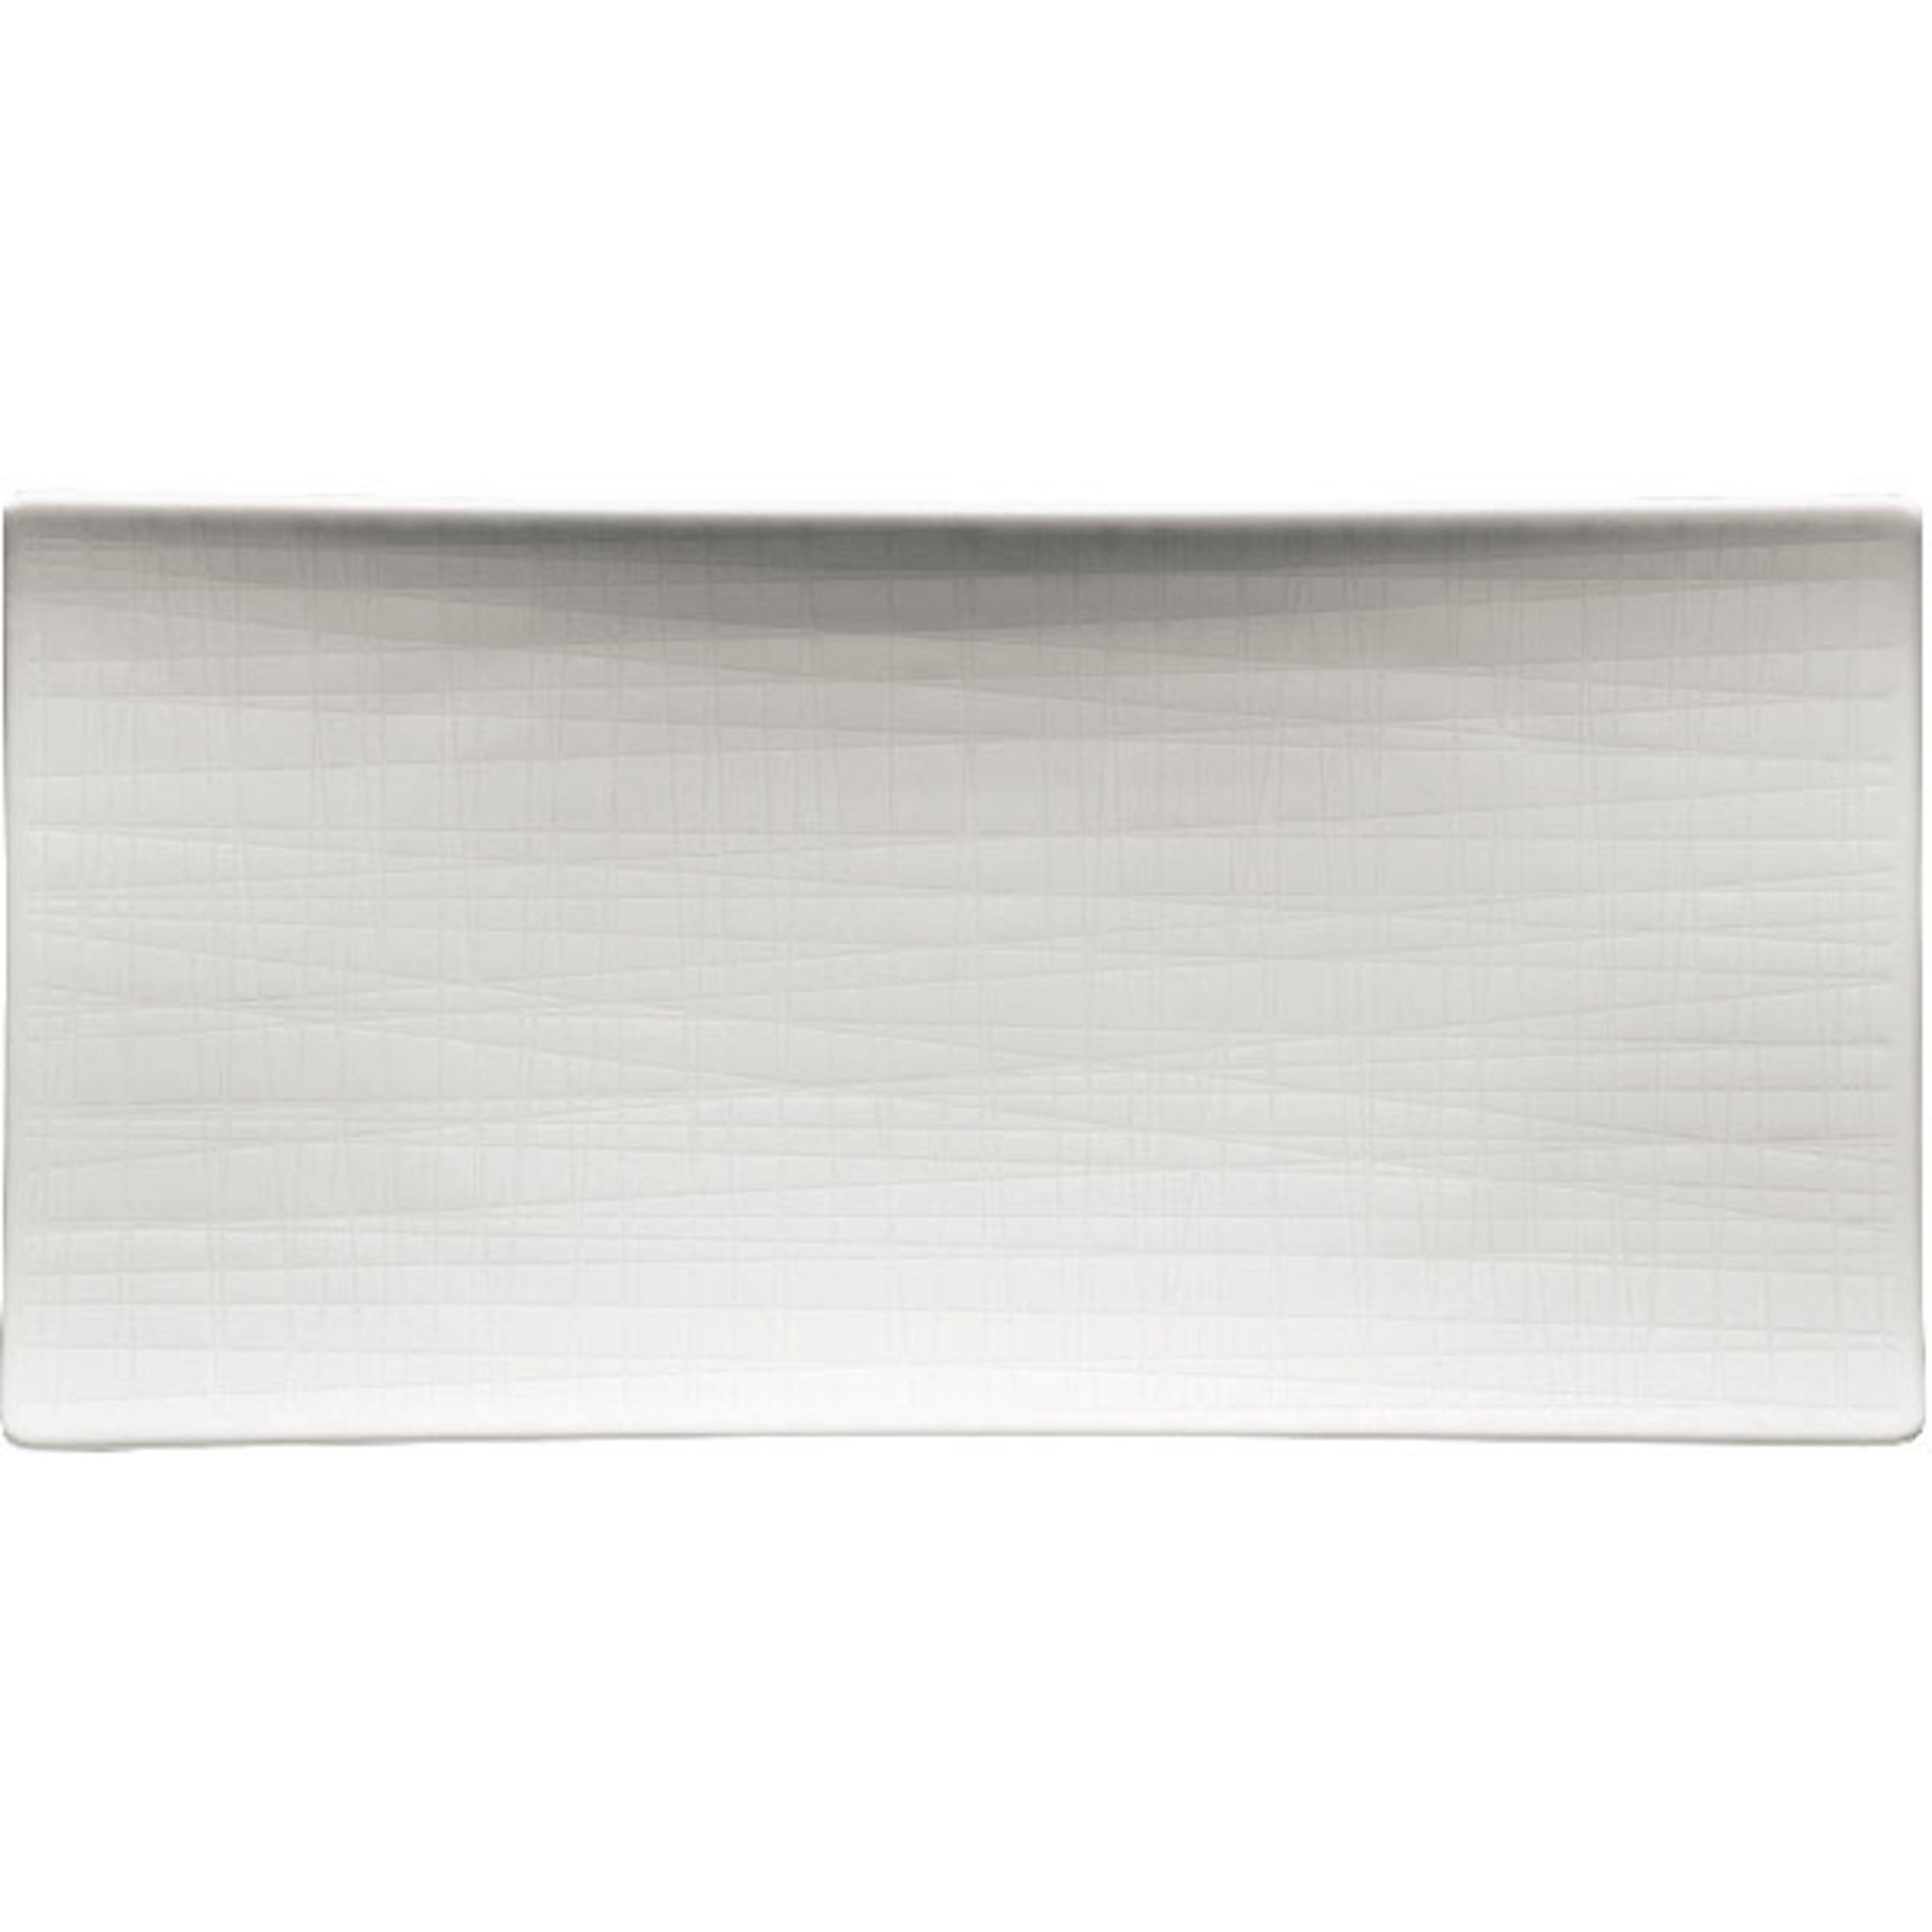 Rosenthal Mesh Relief Fat 26 x 13 cm